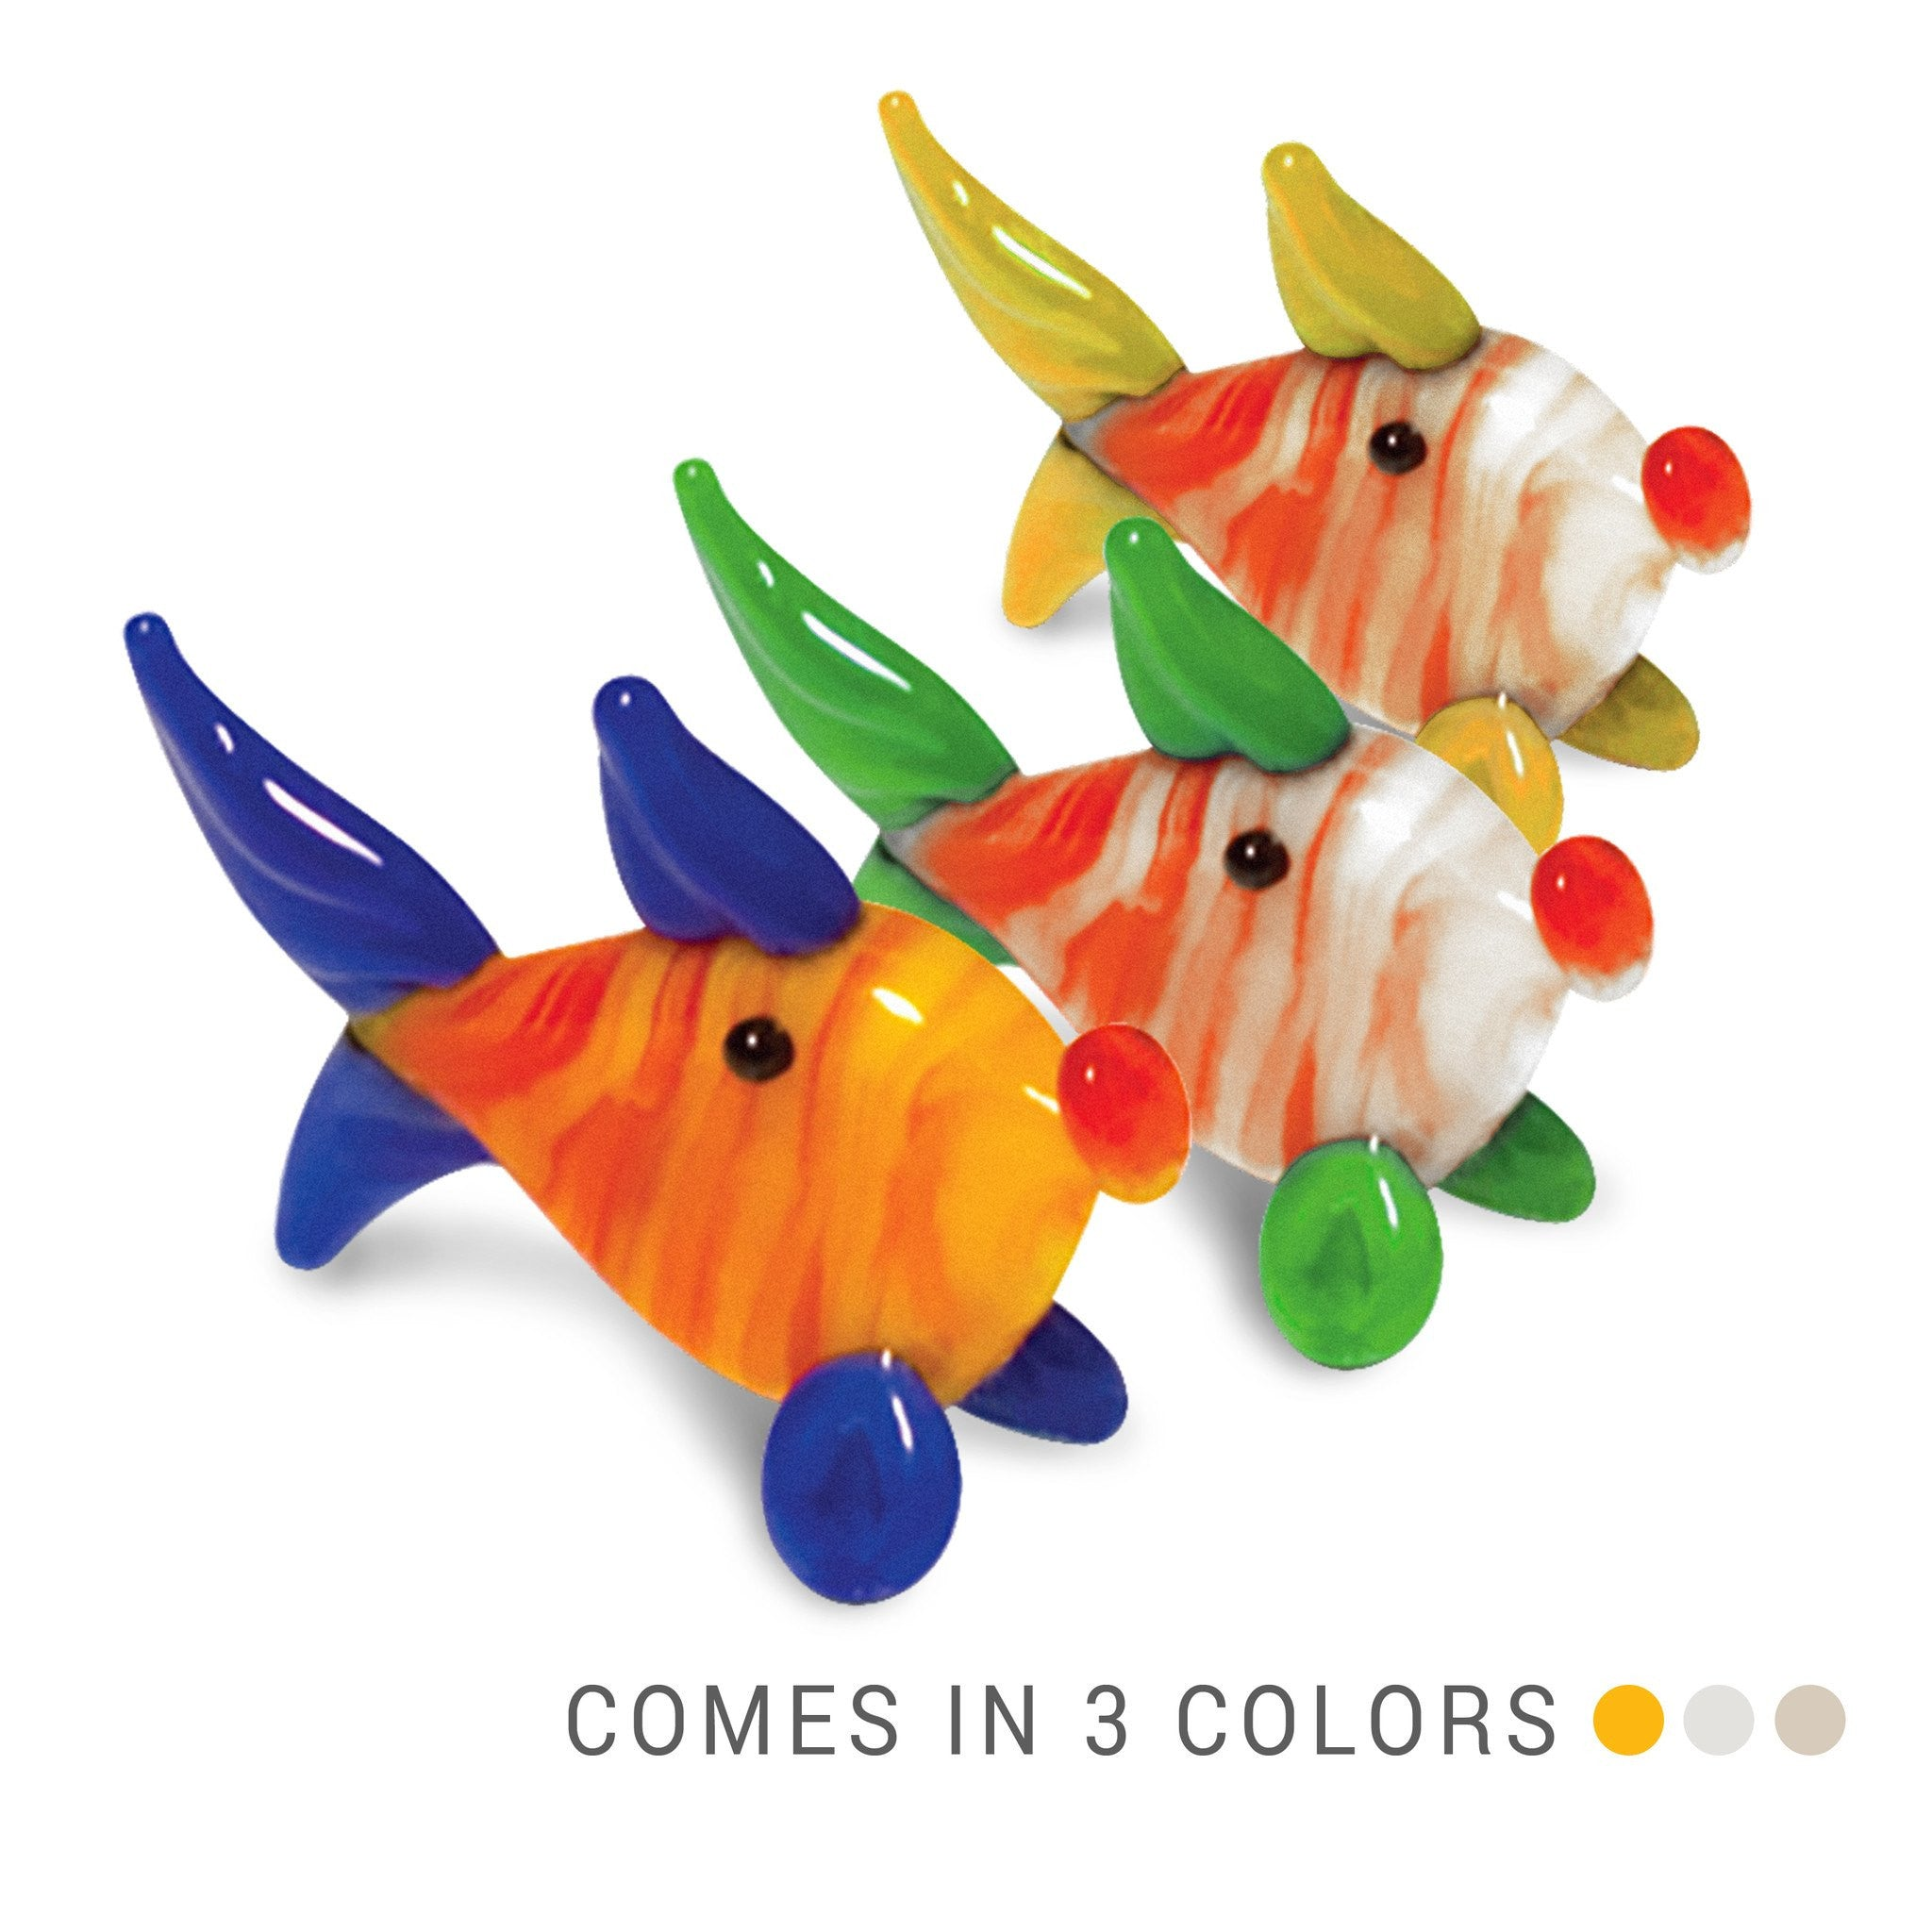 ANA the Fish (in Tynies Collector's Frame) Miniature glass figurines